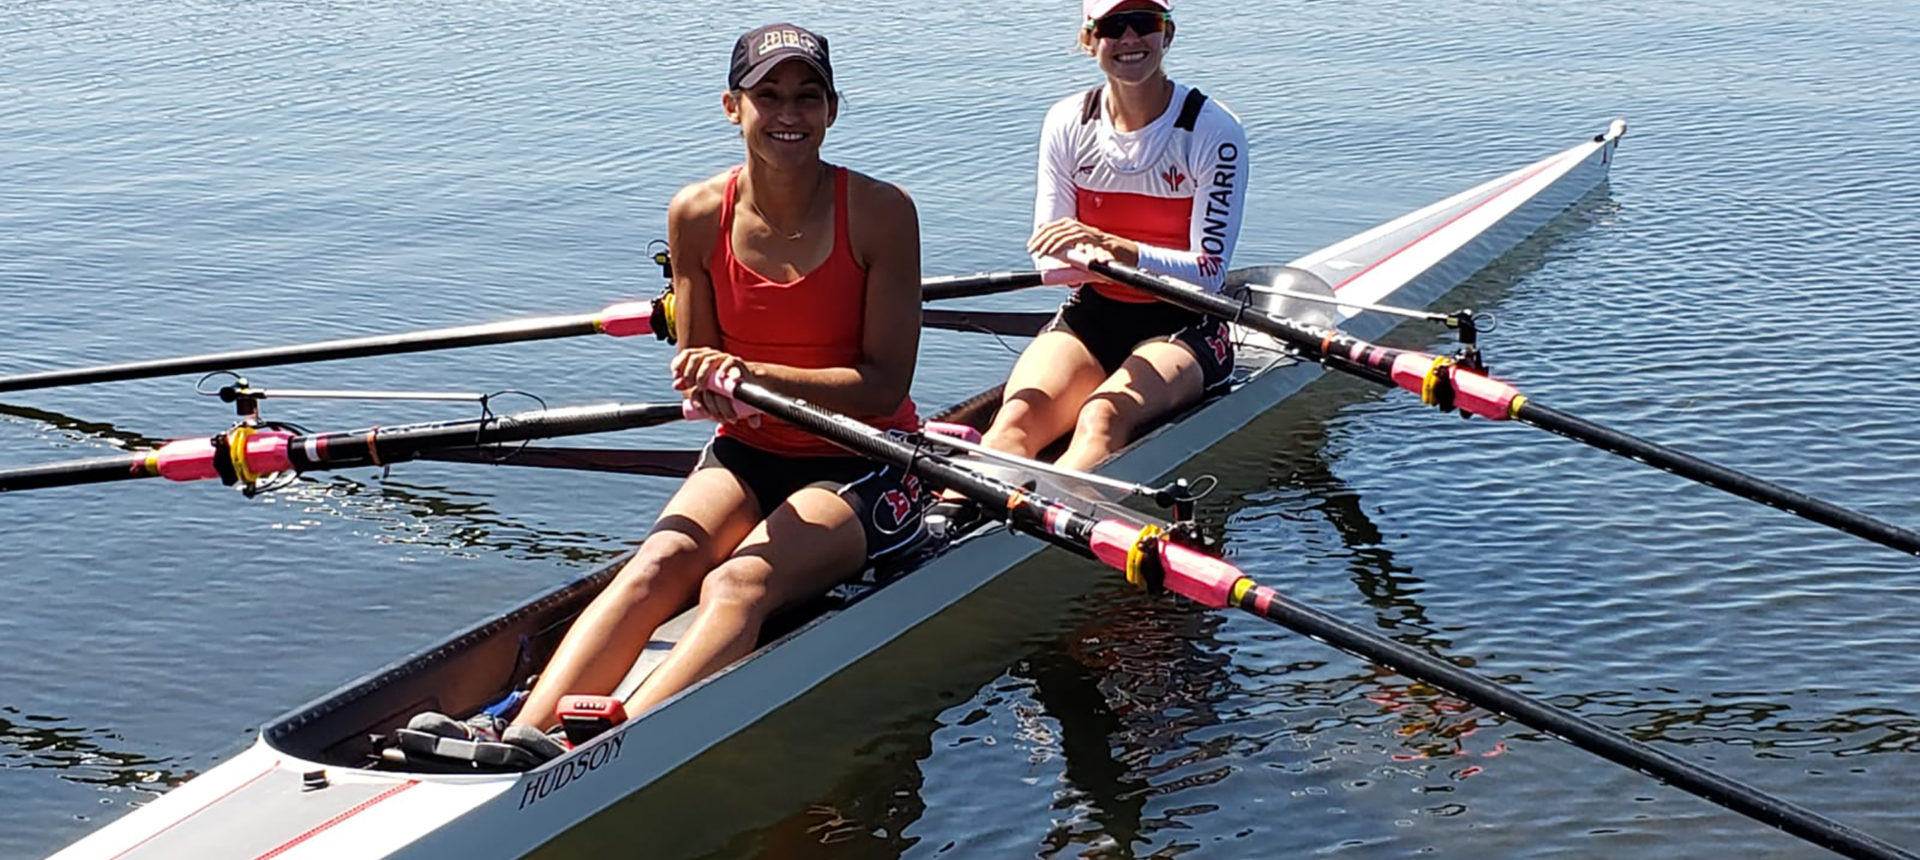 Canada's Mommy Double set for Pan American Games experience